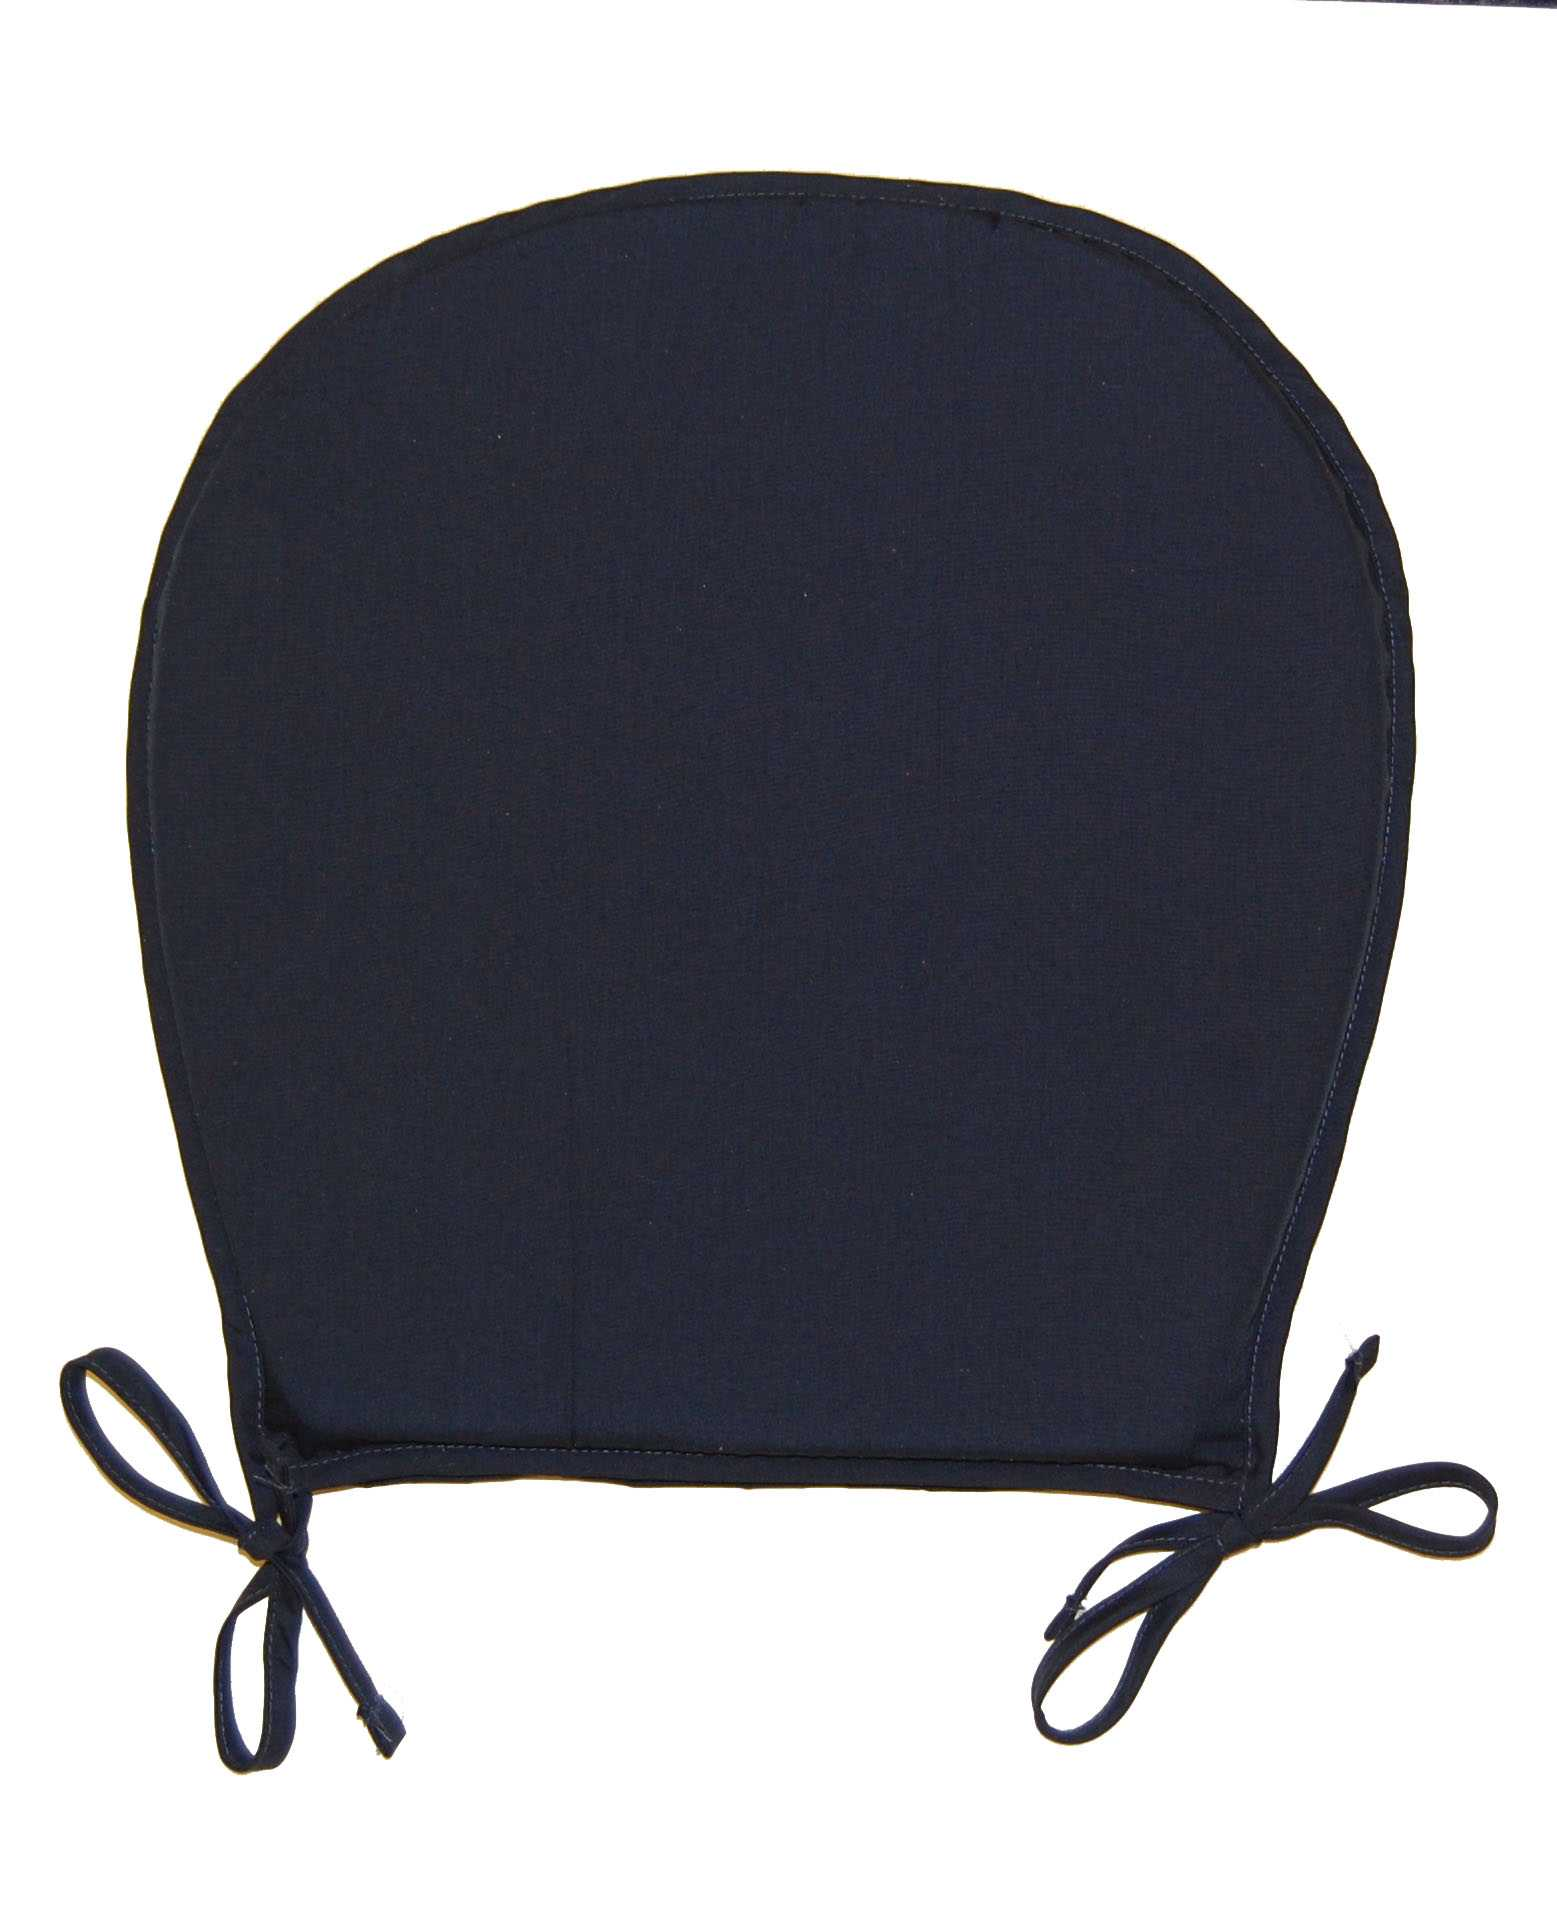 kitchen chair cushions Chair Seat Pads Plain Round Kitchen Garden Furniture